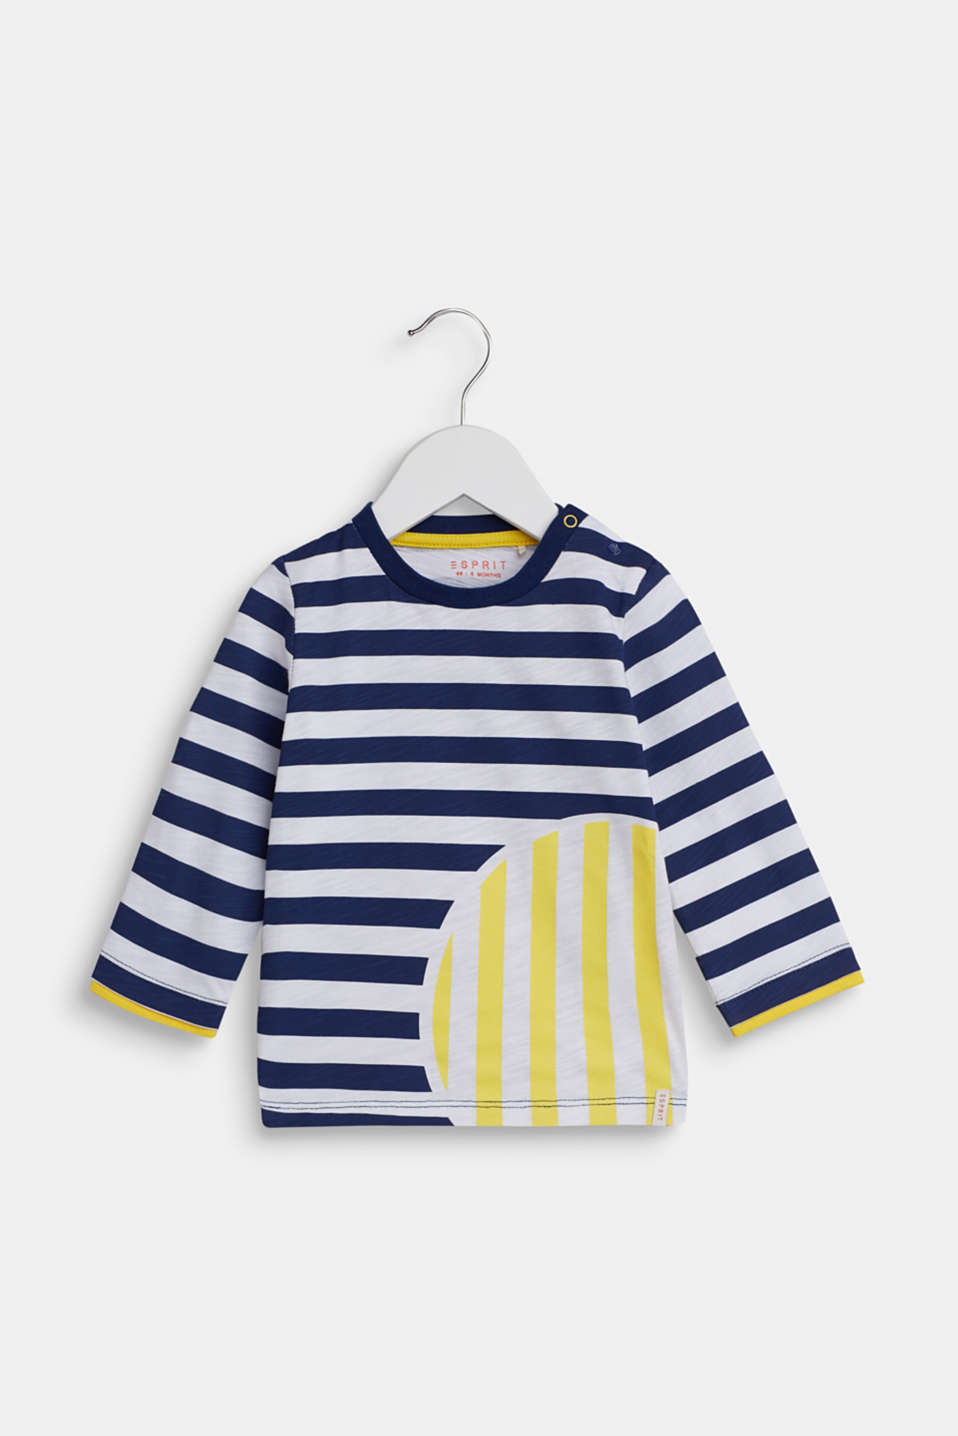 Esprit - Long sleeve top with a striped print, 100% cotton